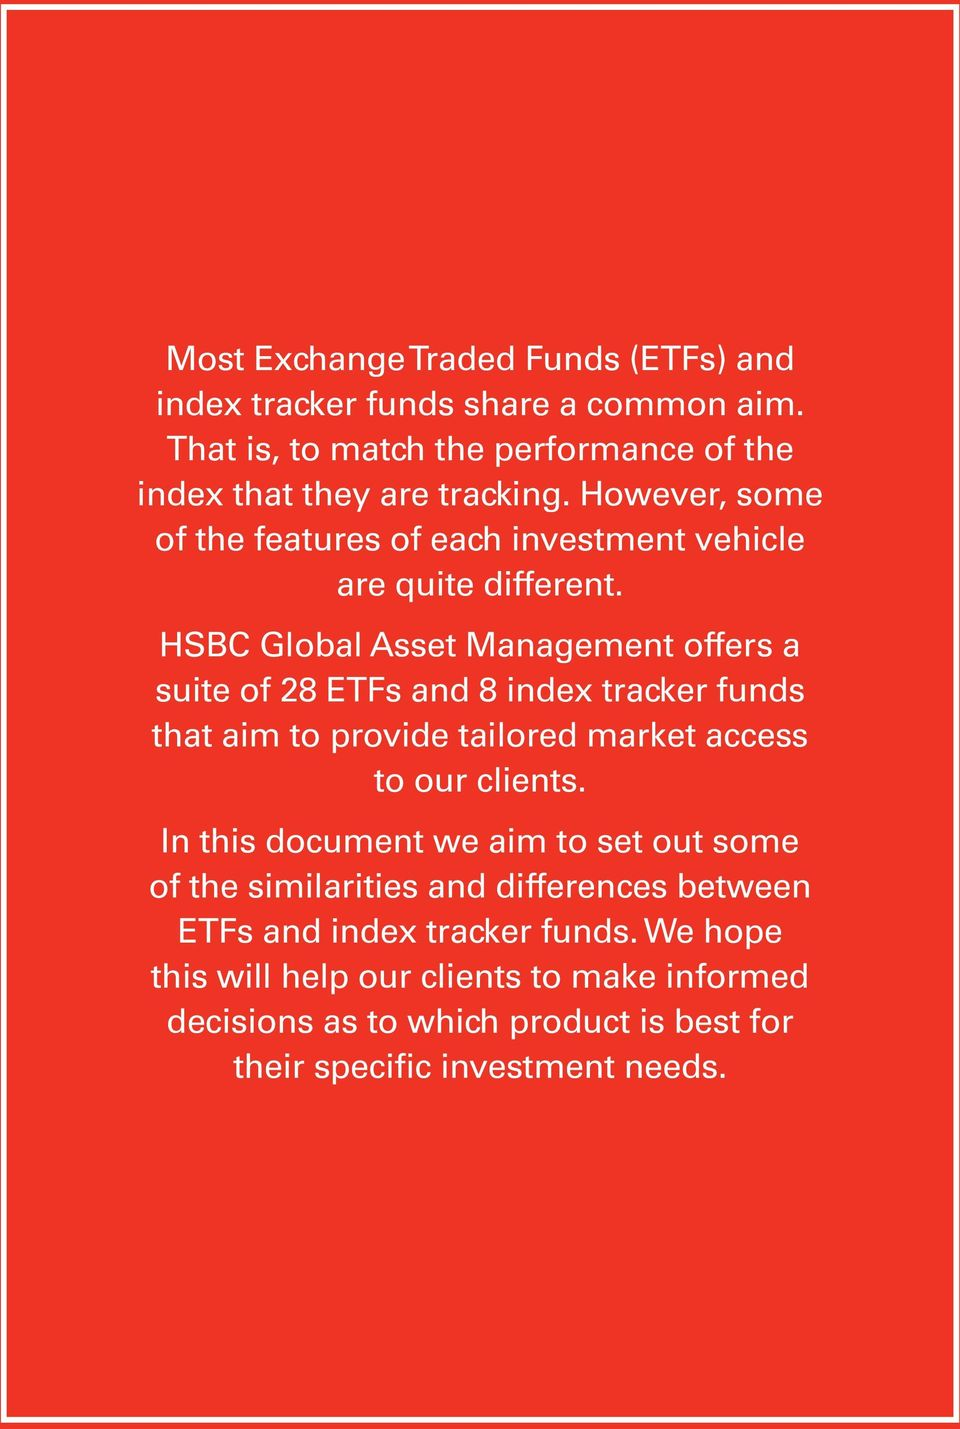 HSBC Global Asset Management offers a suite of 28 ETFs and 8 index tracker funds that aim to provide tailored market access to our clients.